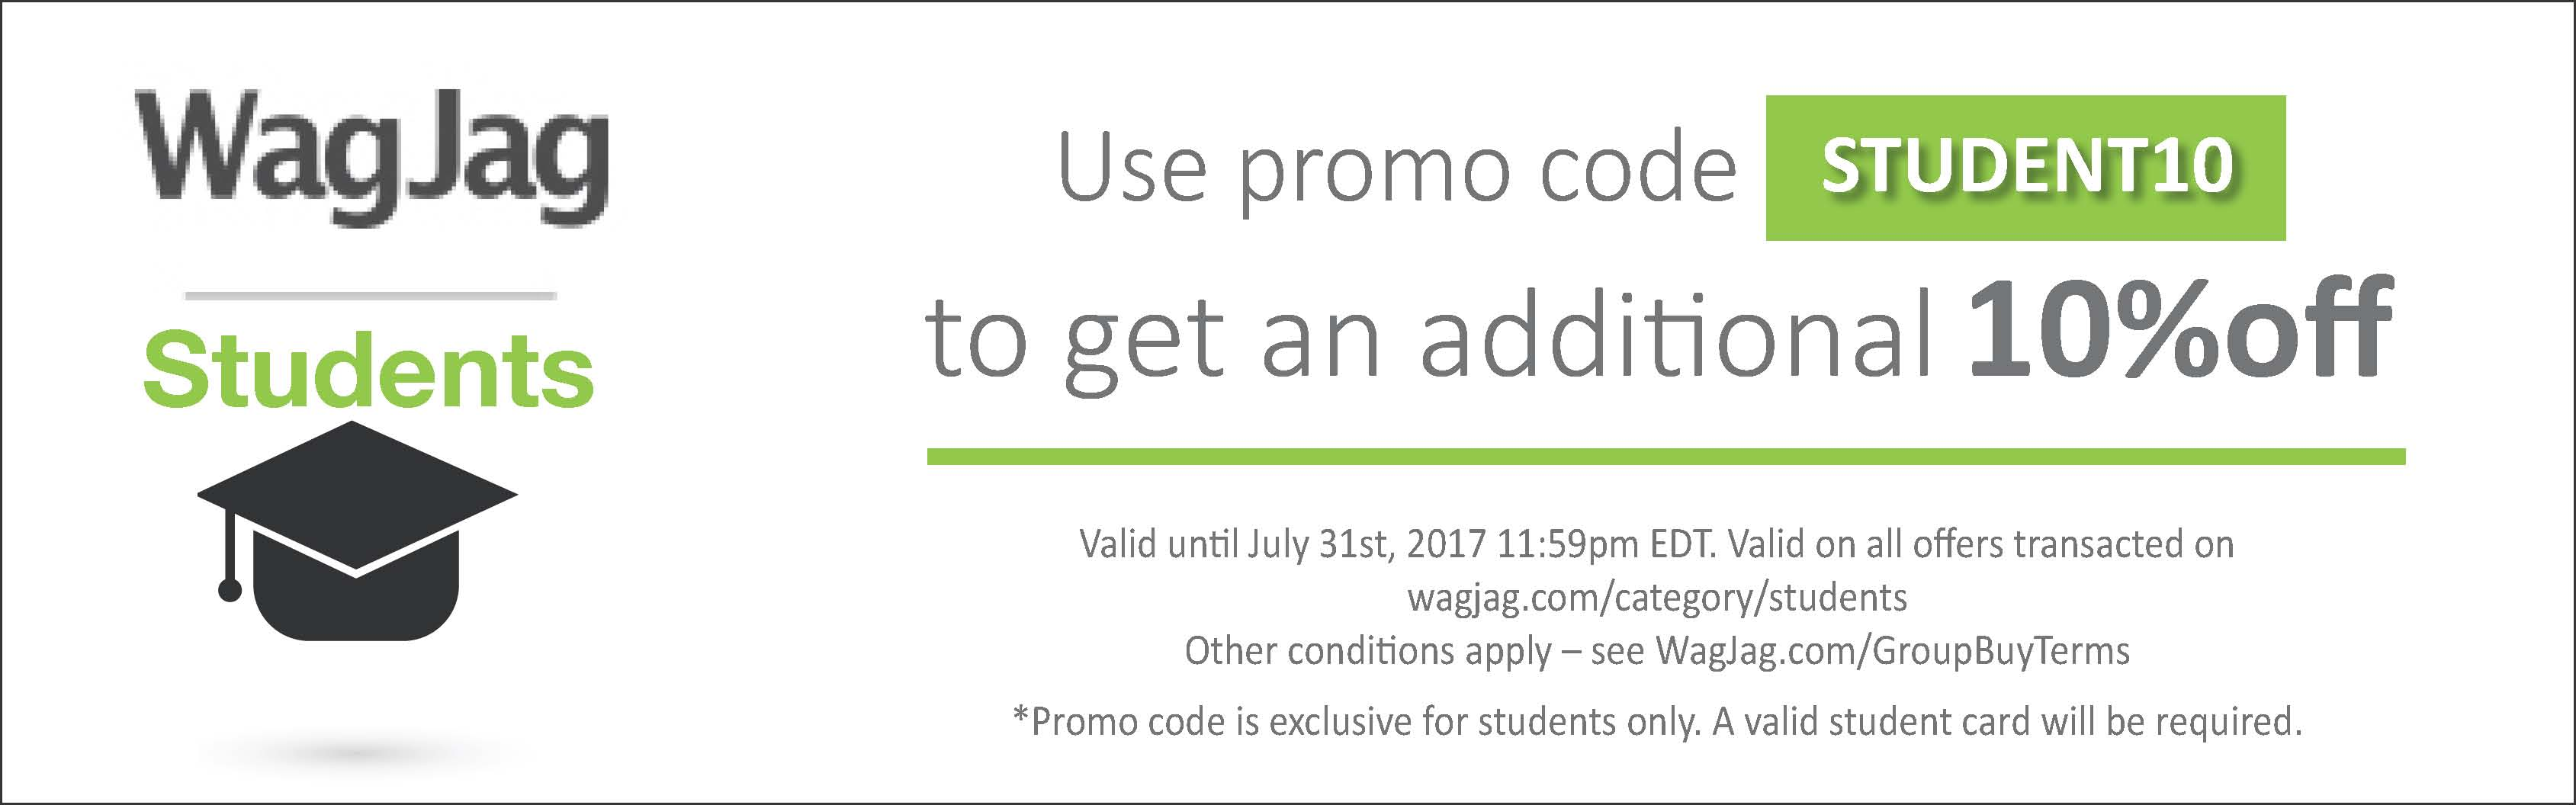 SSave an extra 10% on offers in our student category with code STUDENT10